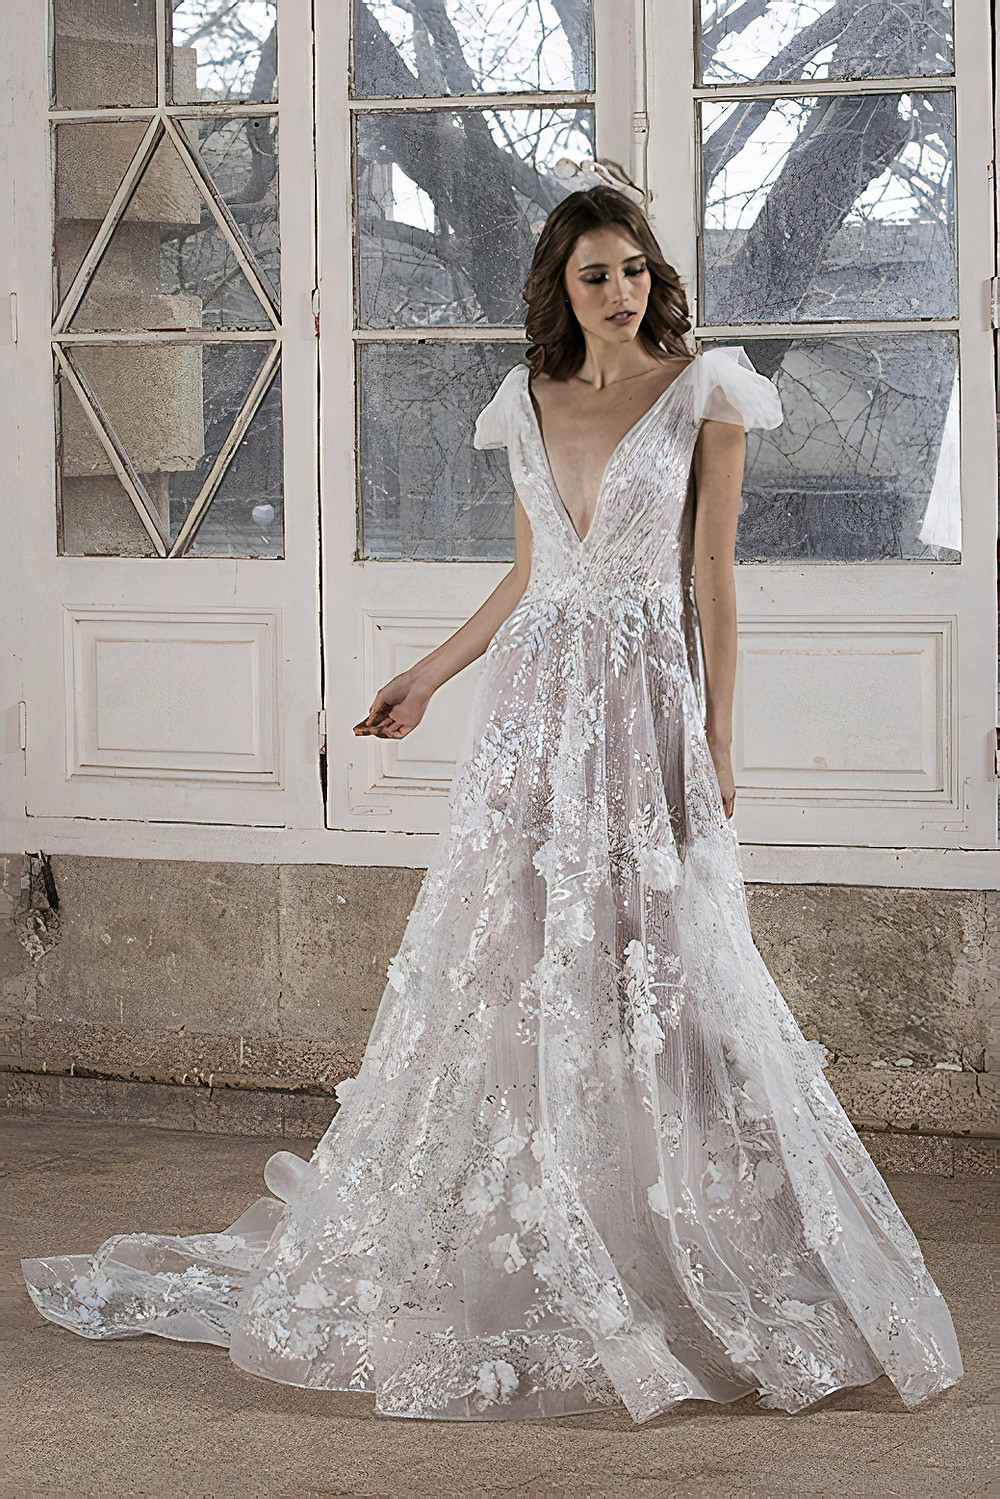 A deep-V wedding gown delicately enriched with silver embroidery and floral embellishments featuring tulle detailing on the shoulder